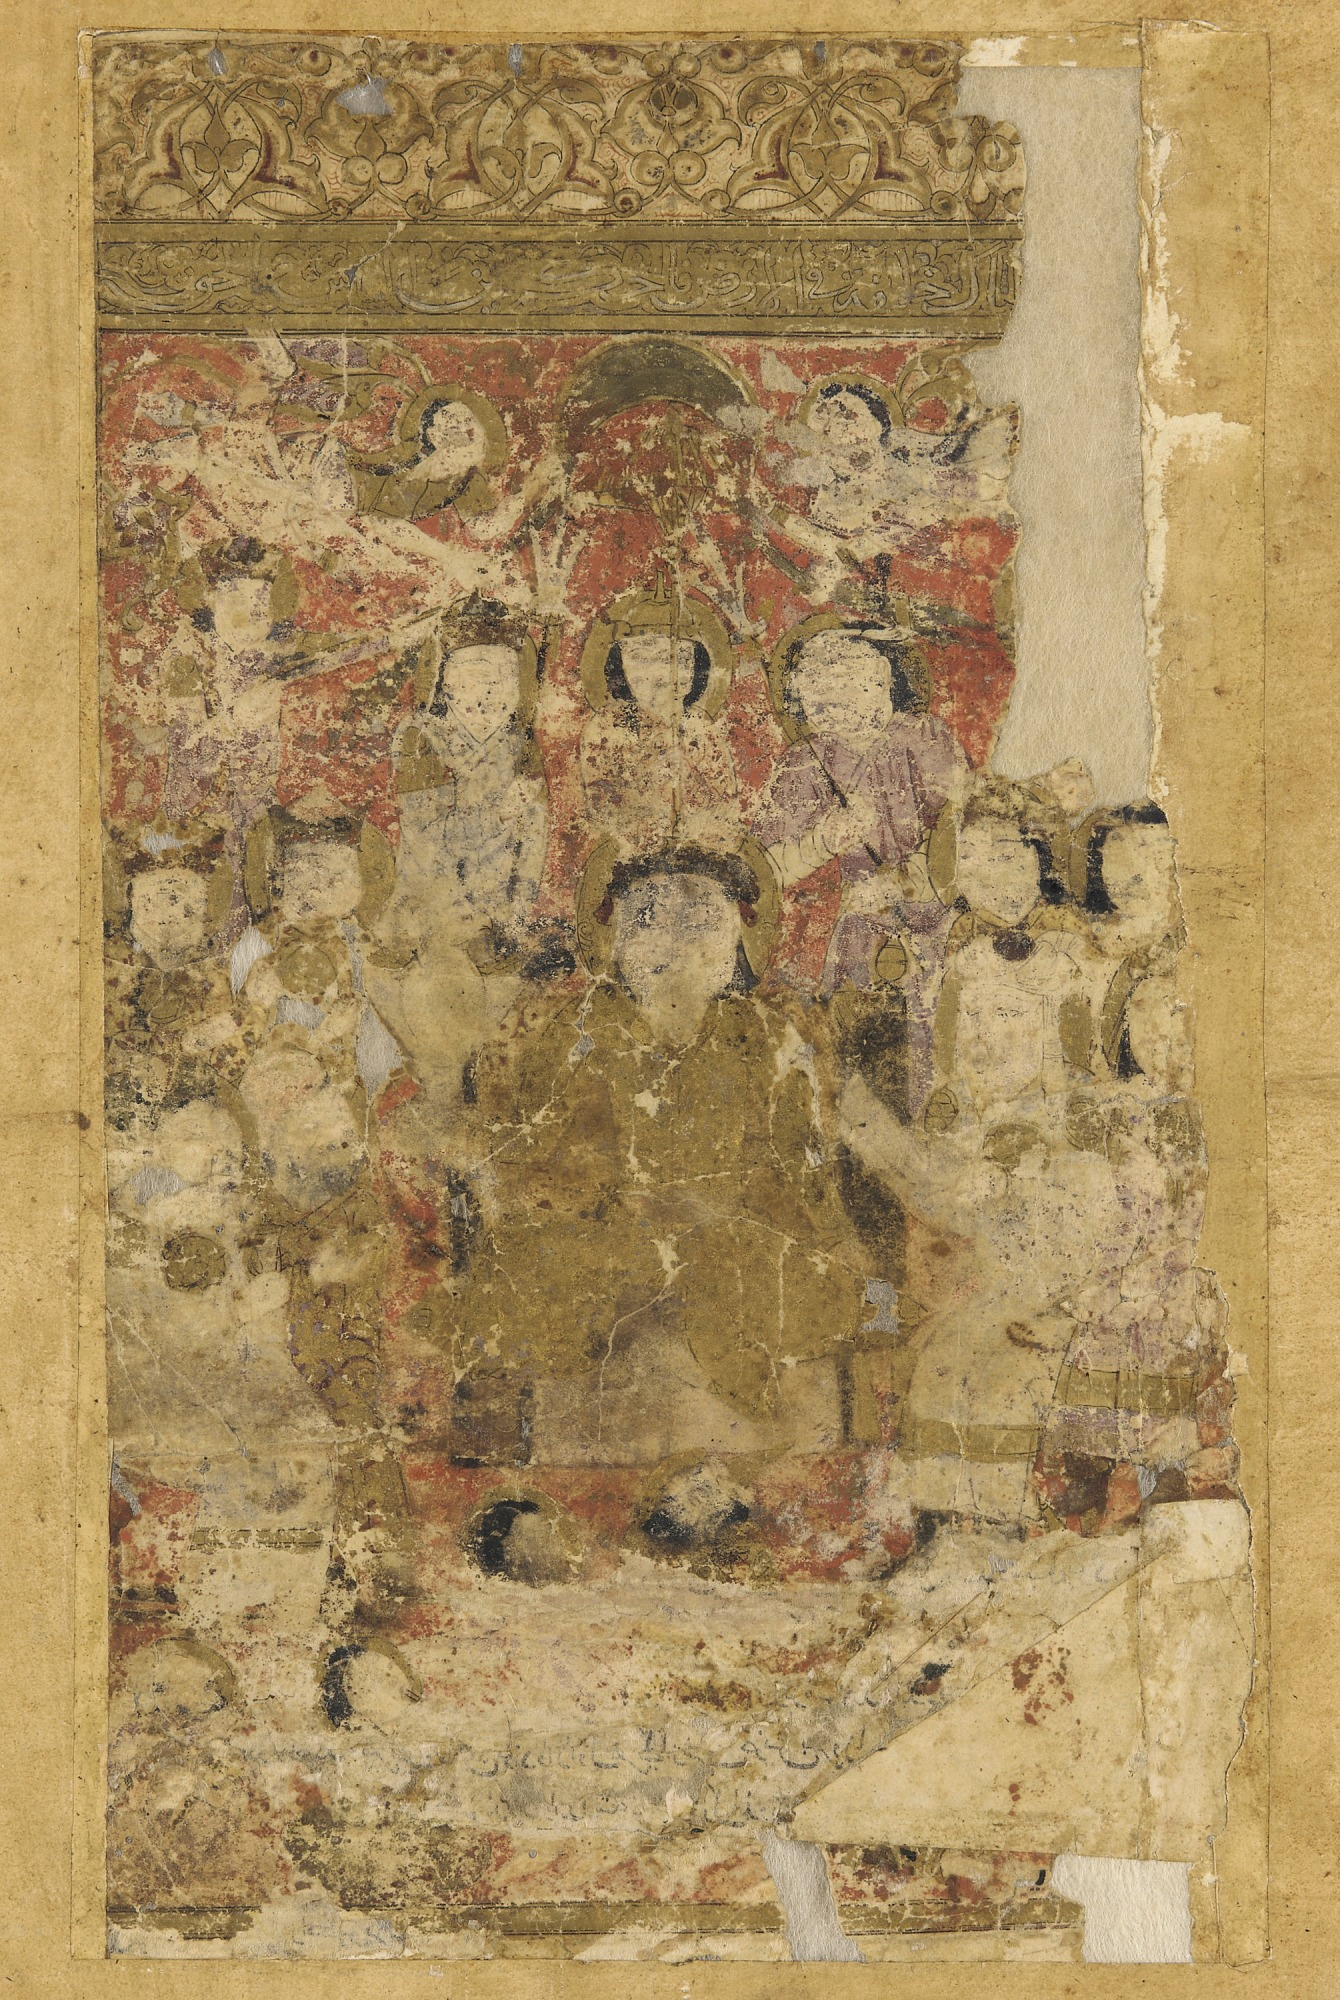 First volume of a Tarikhnama (Book of history) by Bal'ami (died ca. 992-997)